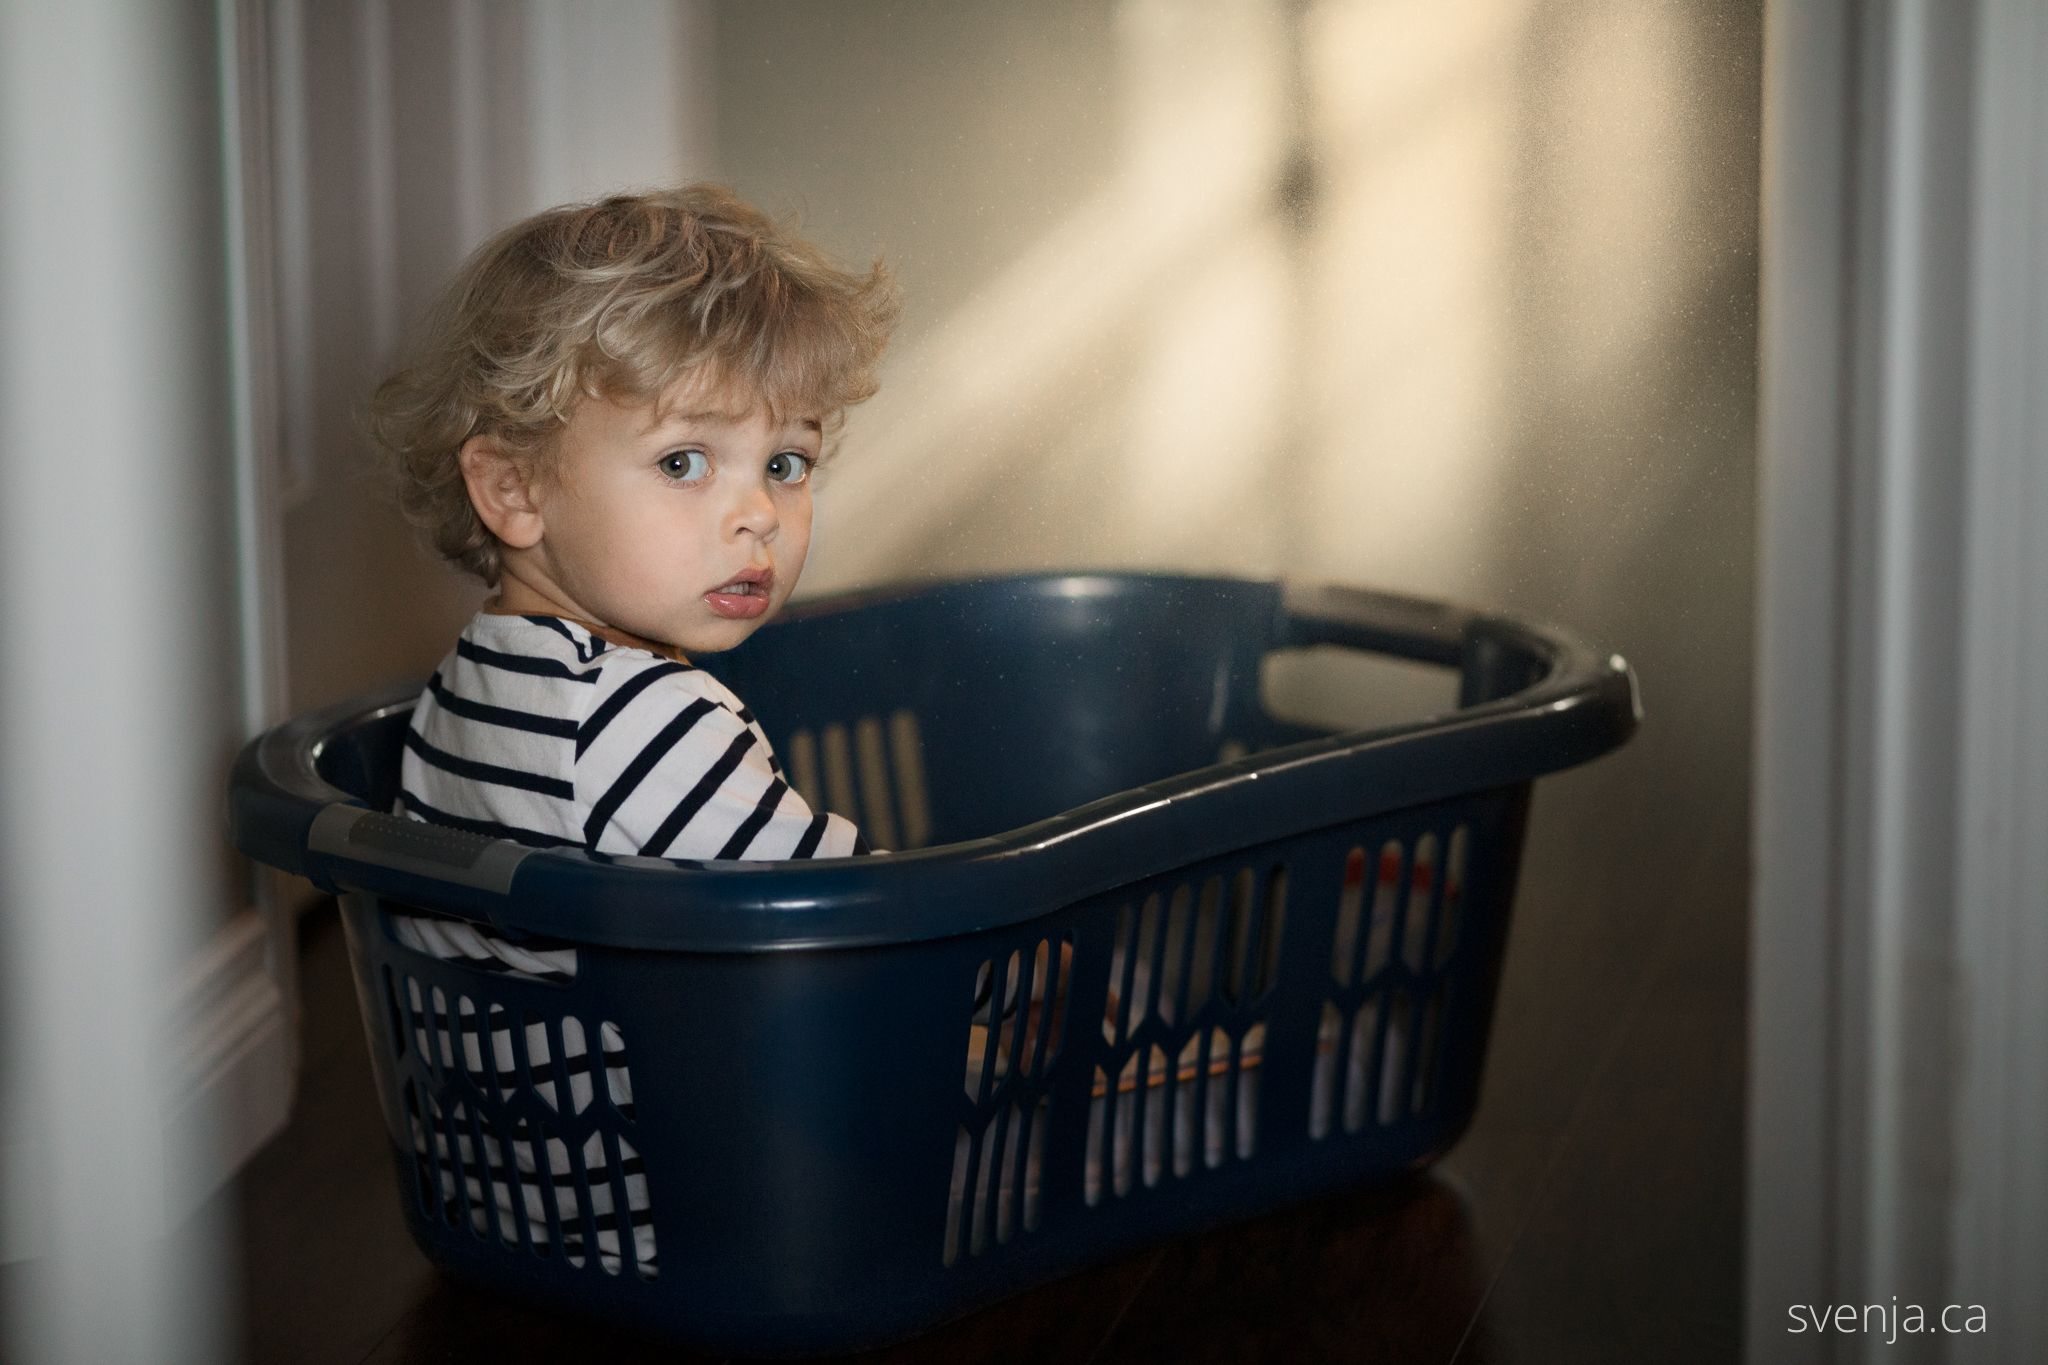 a boy sites in a clothes basket